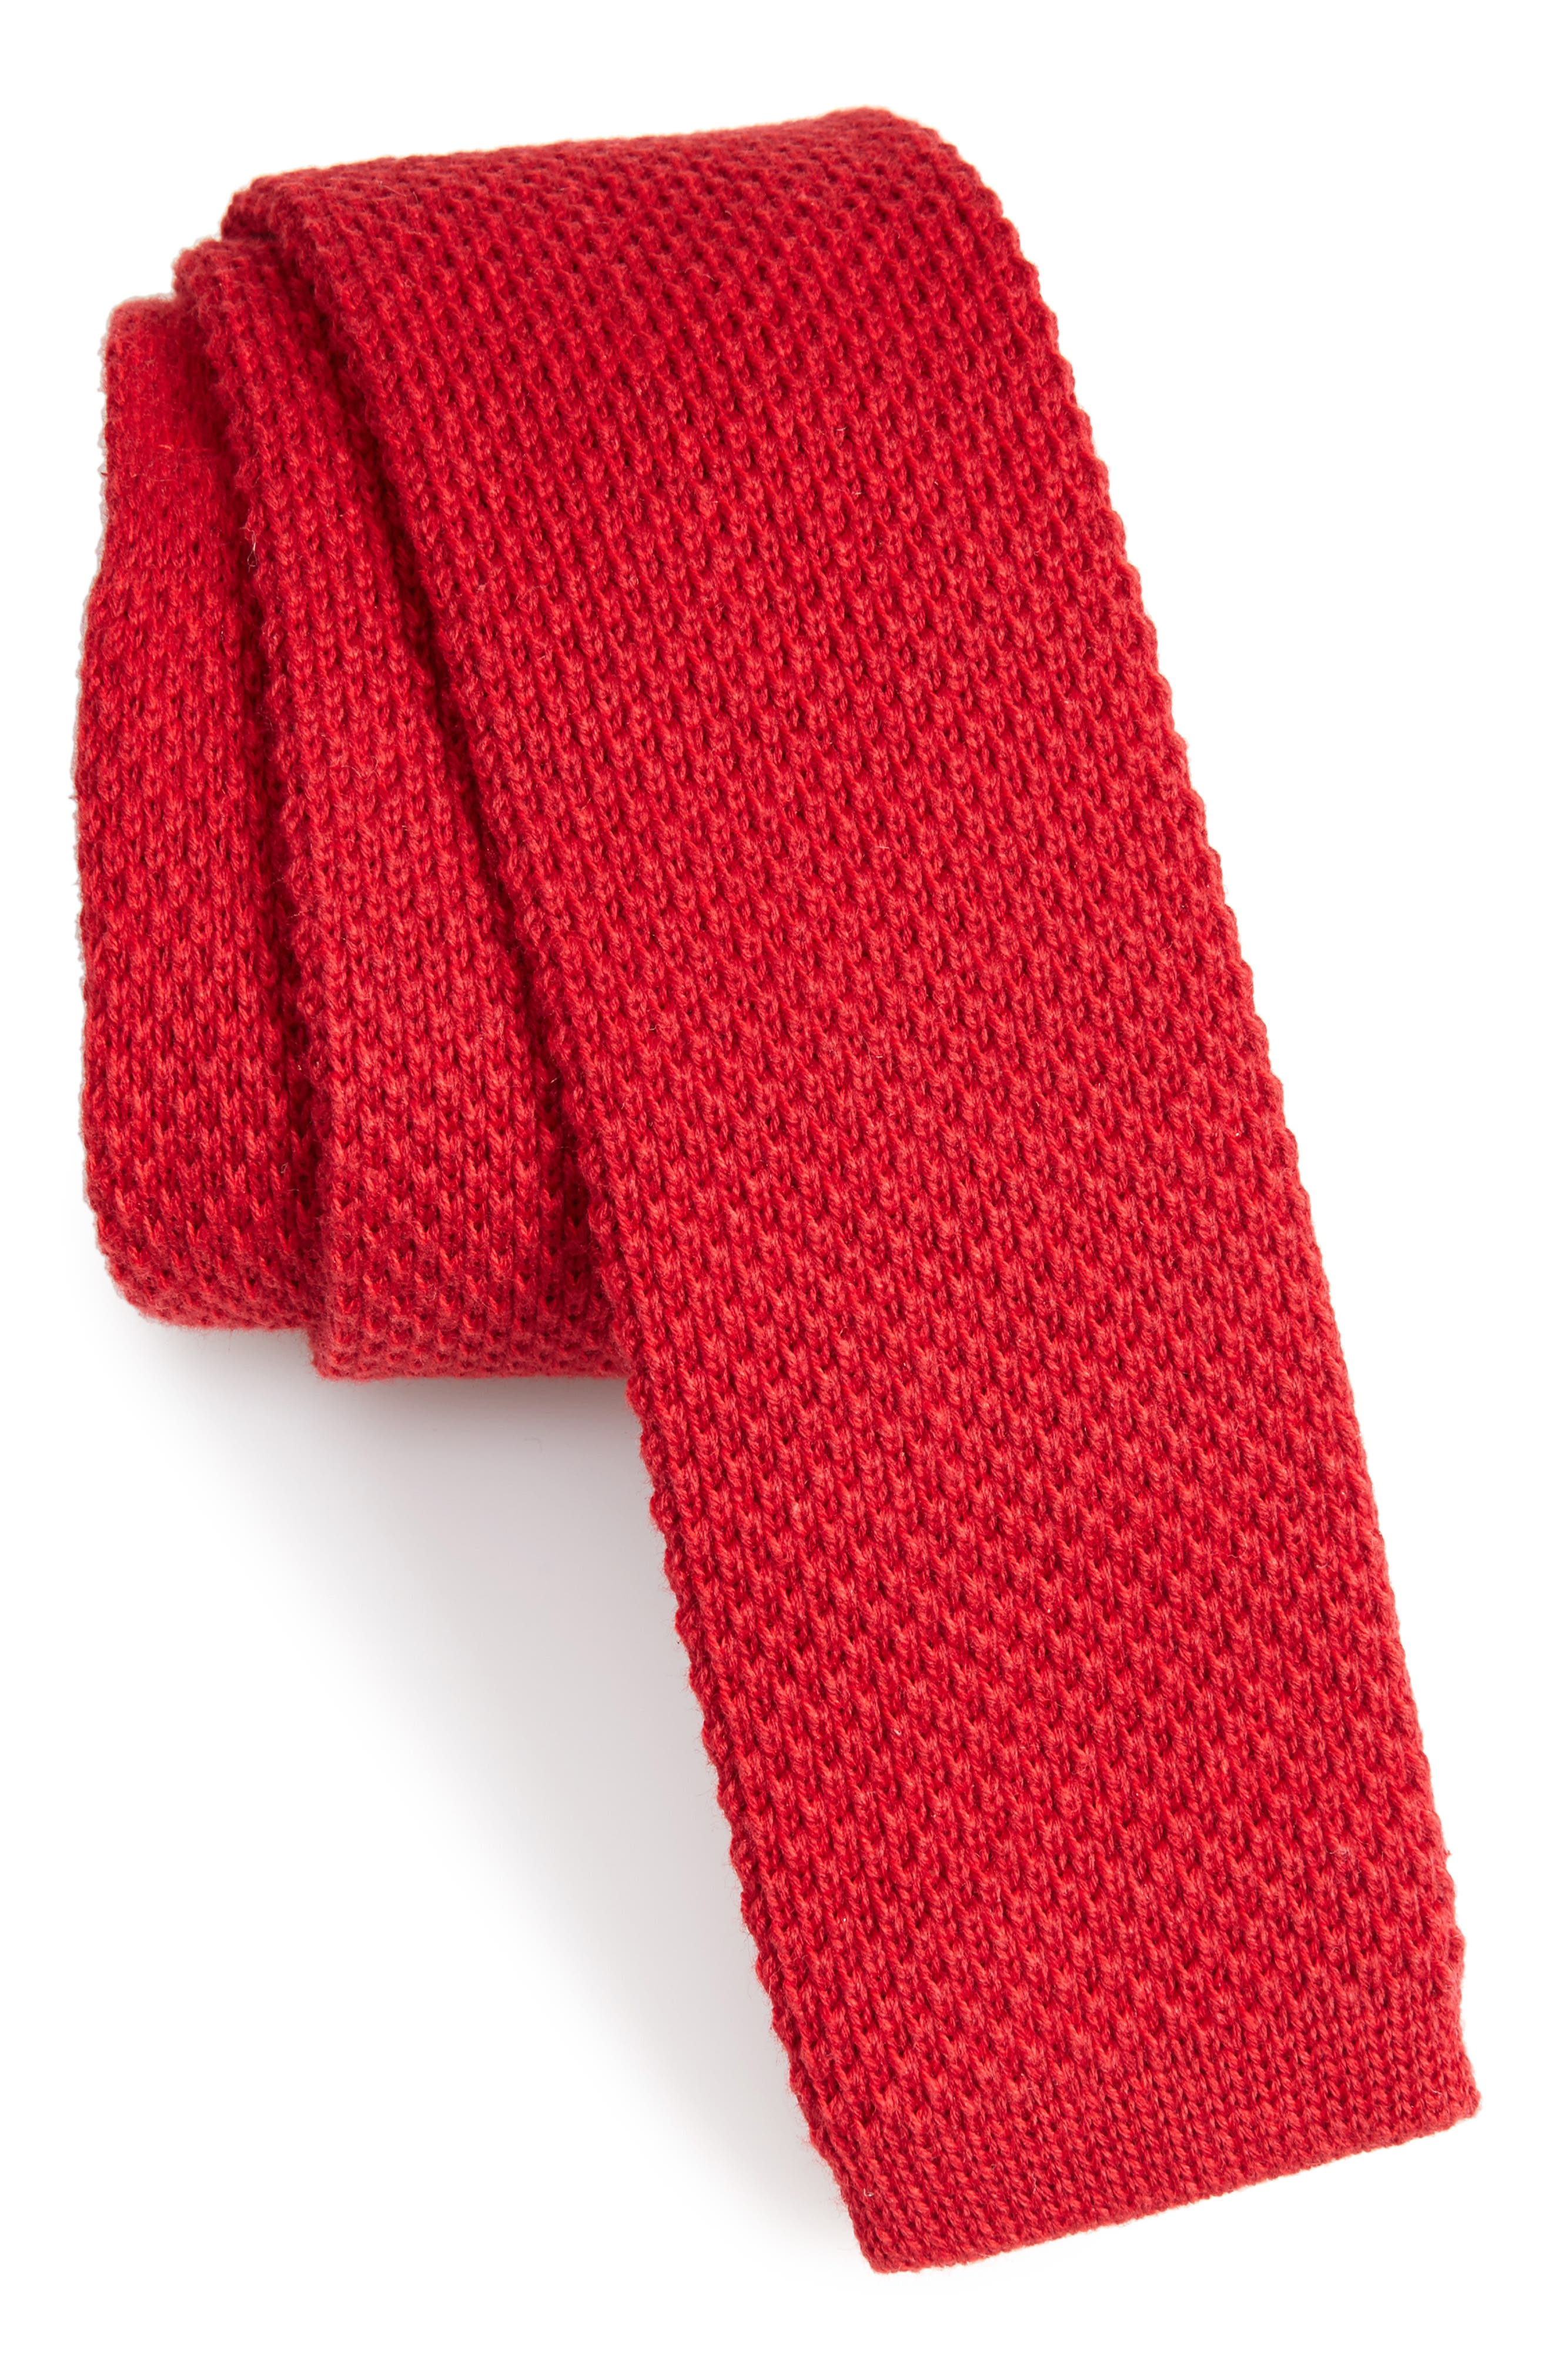 Skinny Knit Cotton Tie,                             Main thumbnail 1, color,                             RED